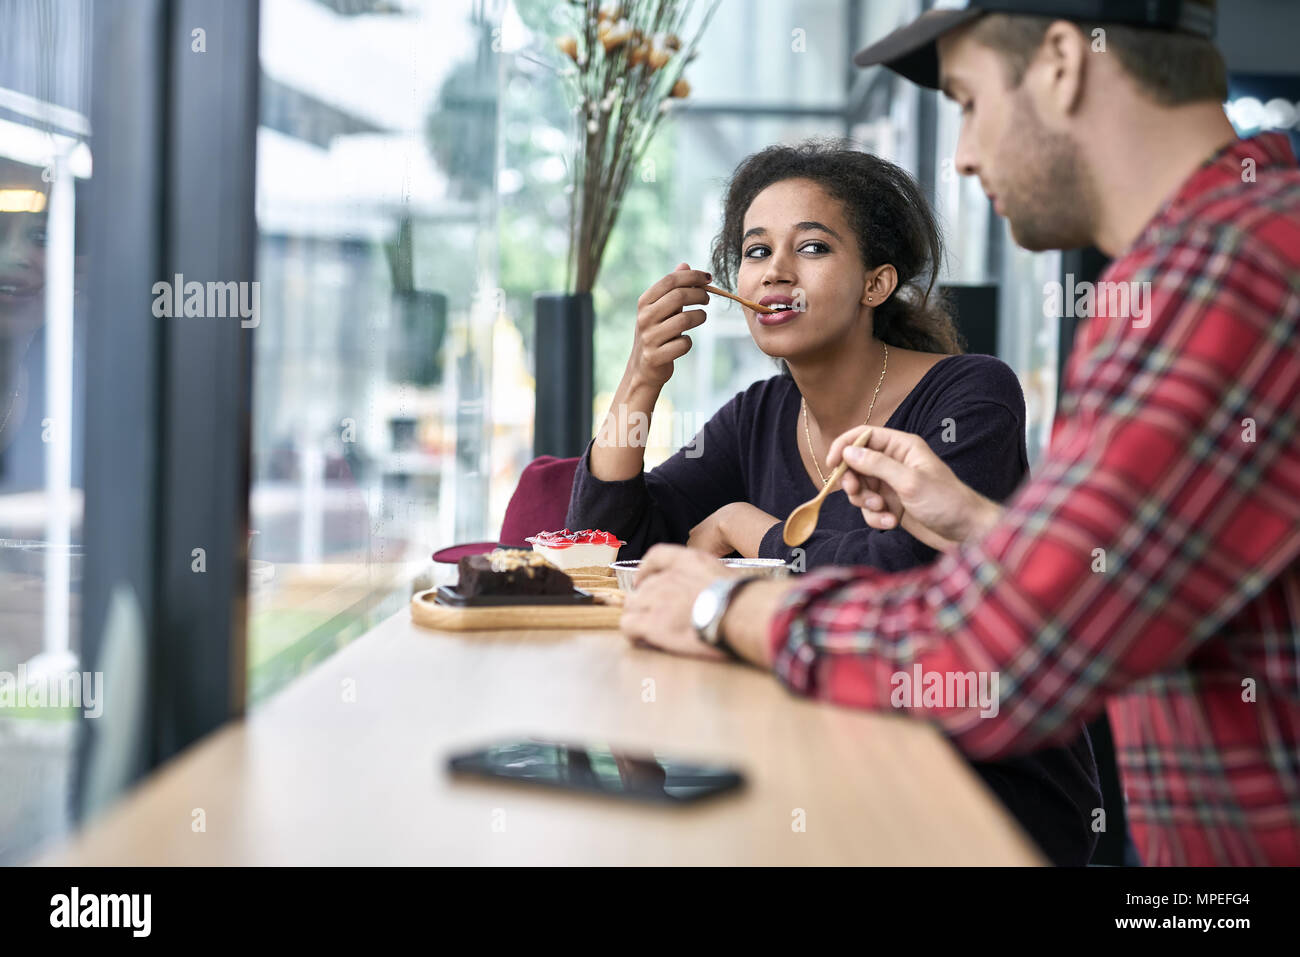 Datant de couple interracial Photo Stock